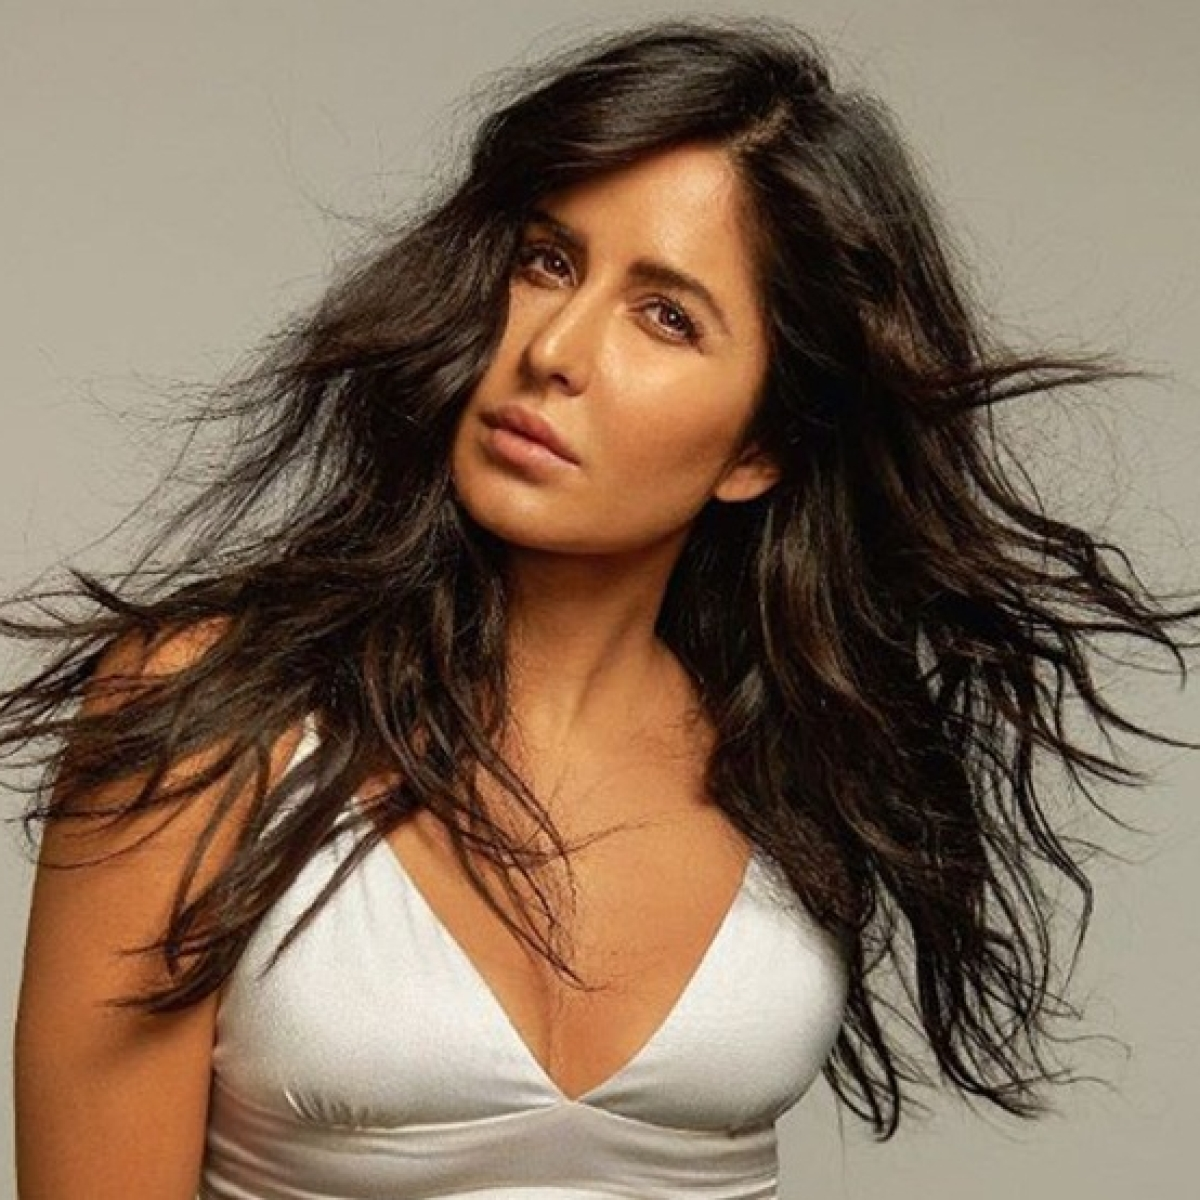 Katrina Kaif's full body workout video on Instagram explains how she looks so hot all the time